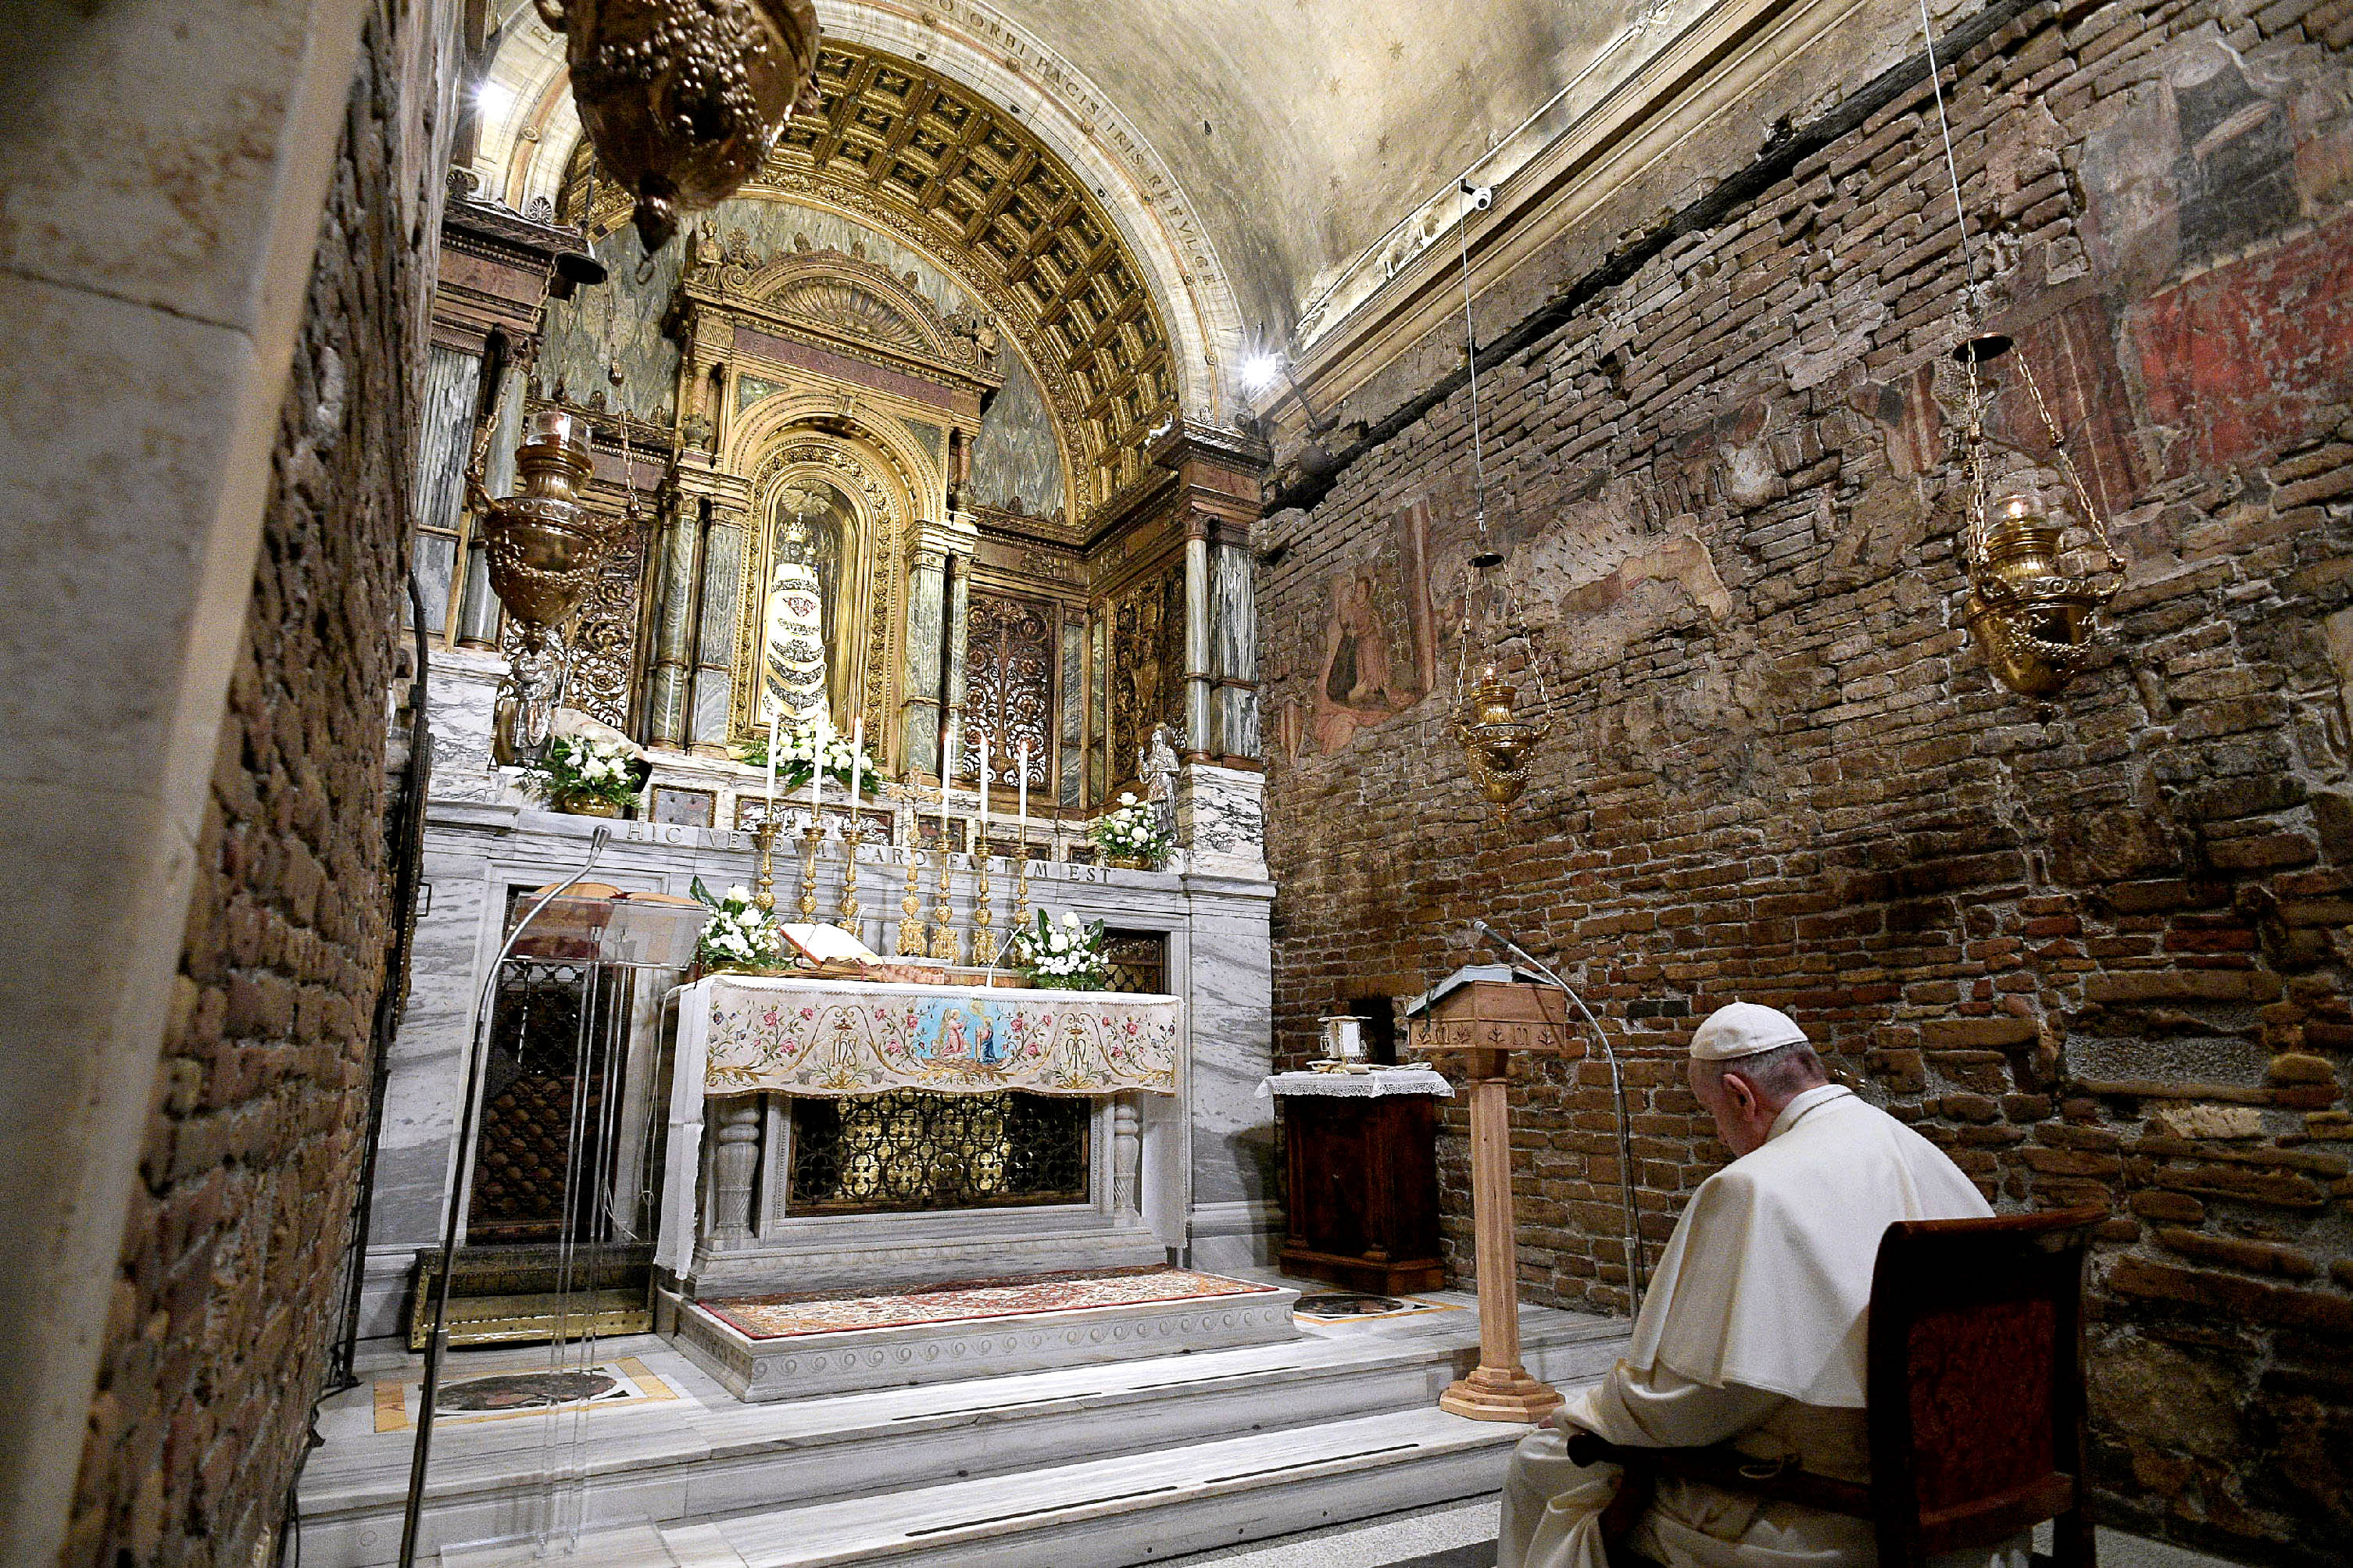 Pope Francis prays inside the Sanctuary of the Holy House on the feast of the Annunciation in Loreto, Italy, 25 March 2019. Photo: CNS/Vatican Media.